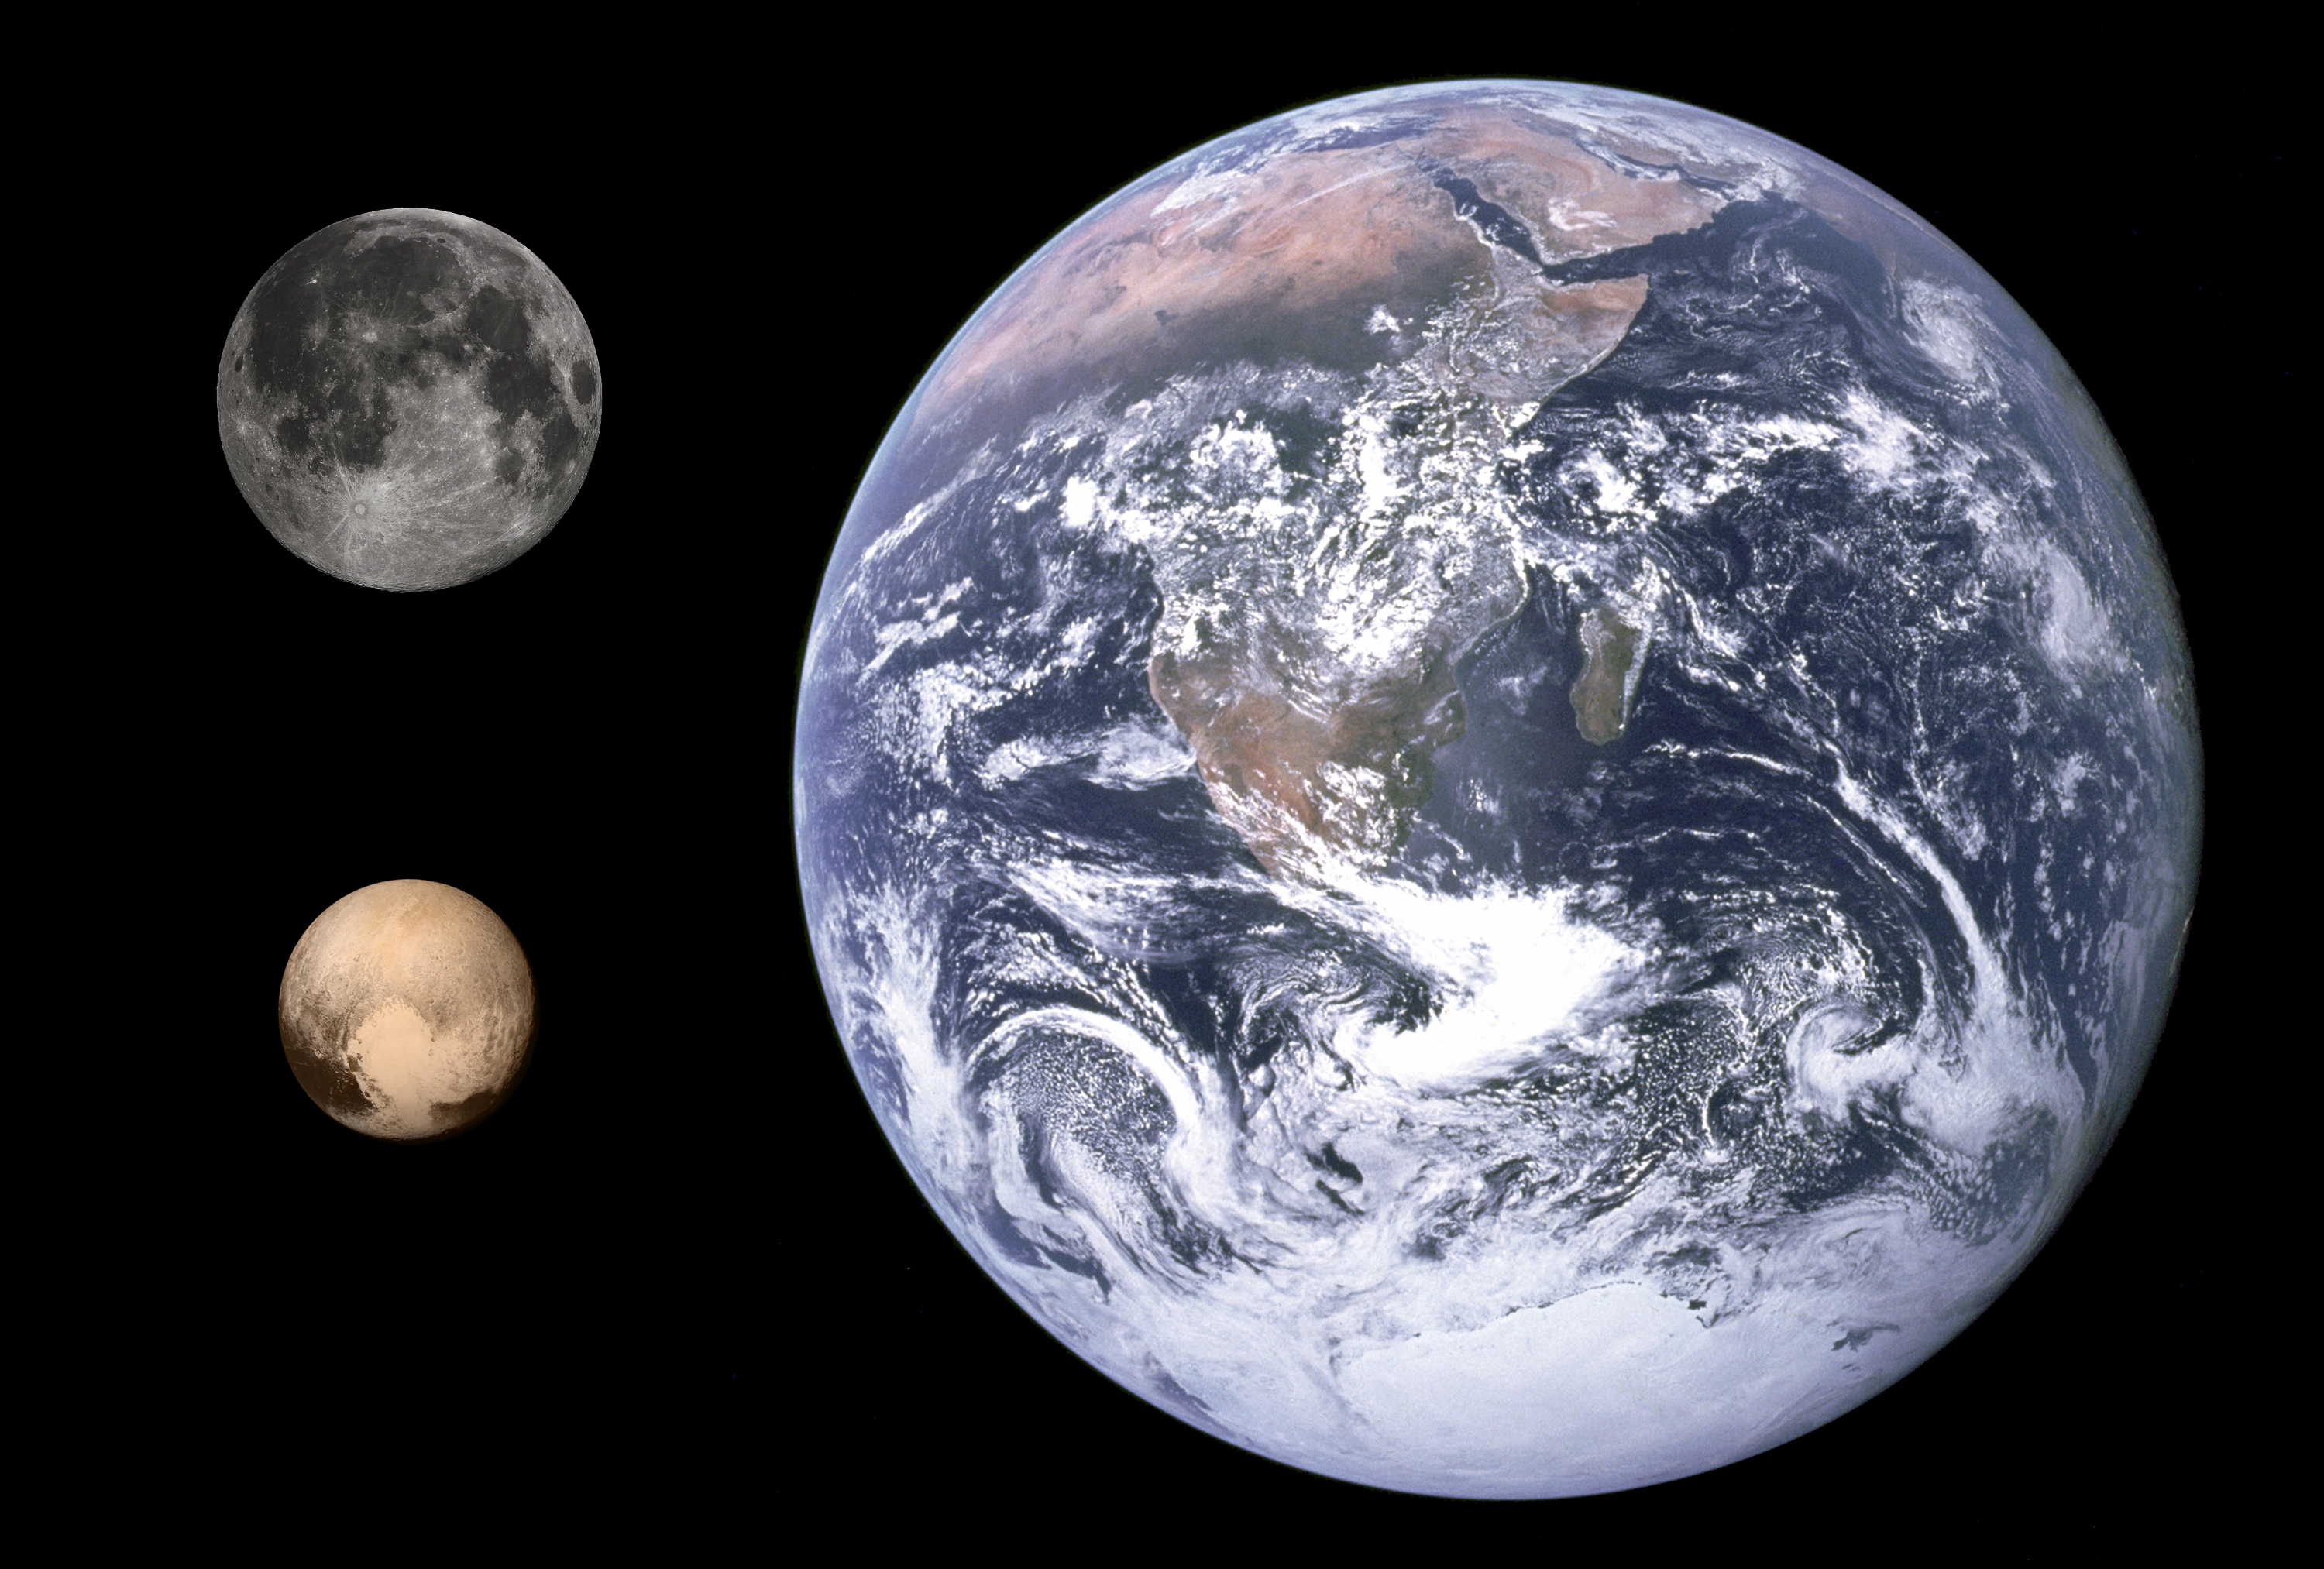 Diameter comparison of Pluto, Moon, and Earth. Scale: Approximately 28.9 km per pixel. Images from NASA, March 20, 2015.